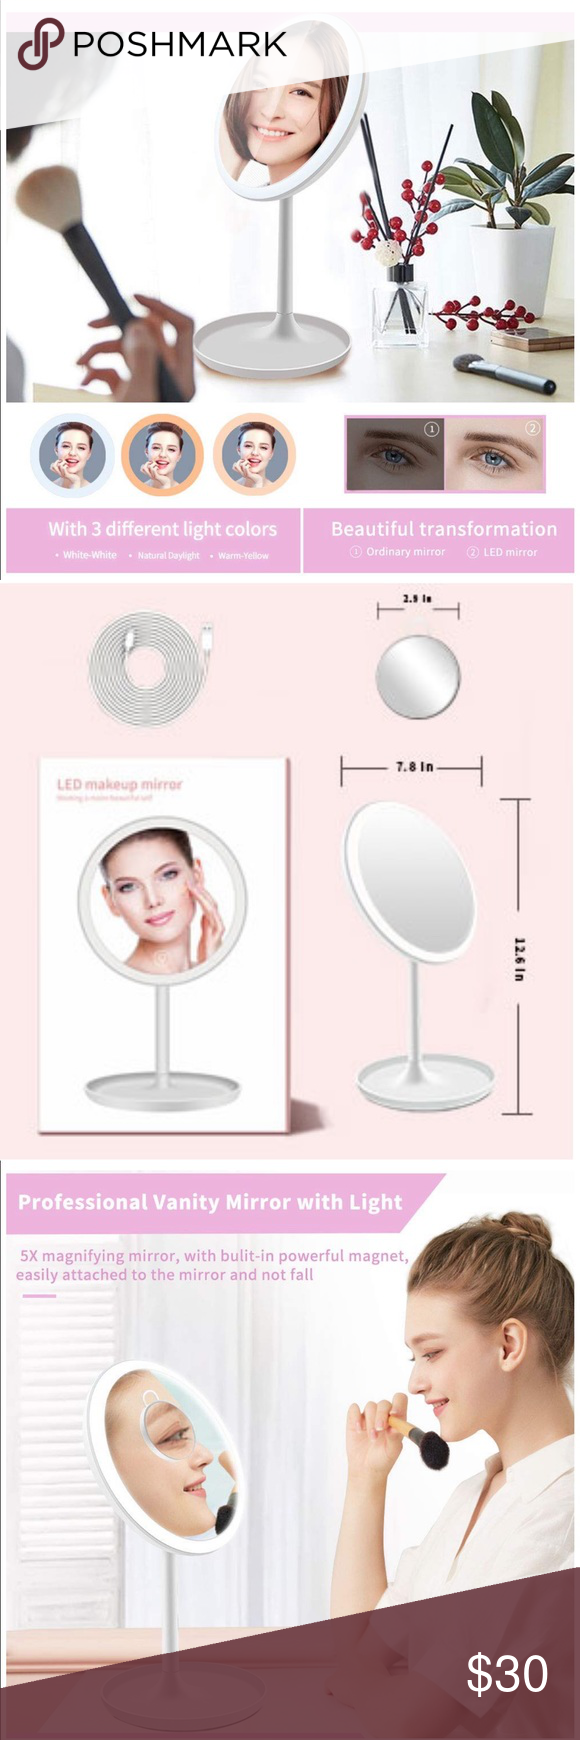 lighted makeup mirror with magnification new lighted makeup mirror with magnific…